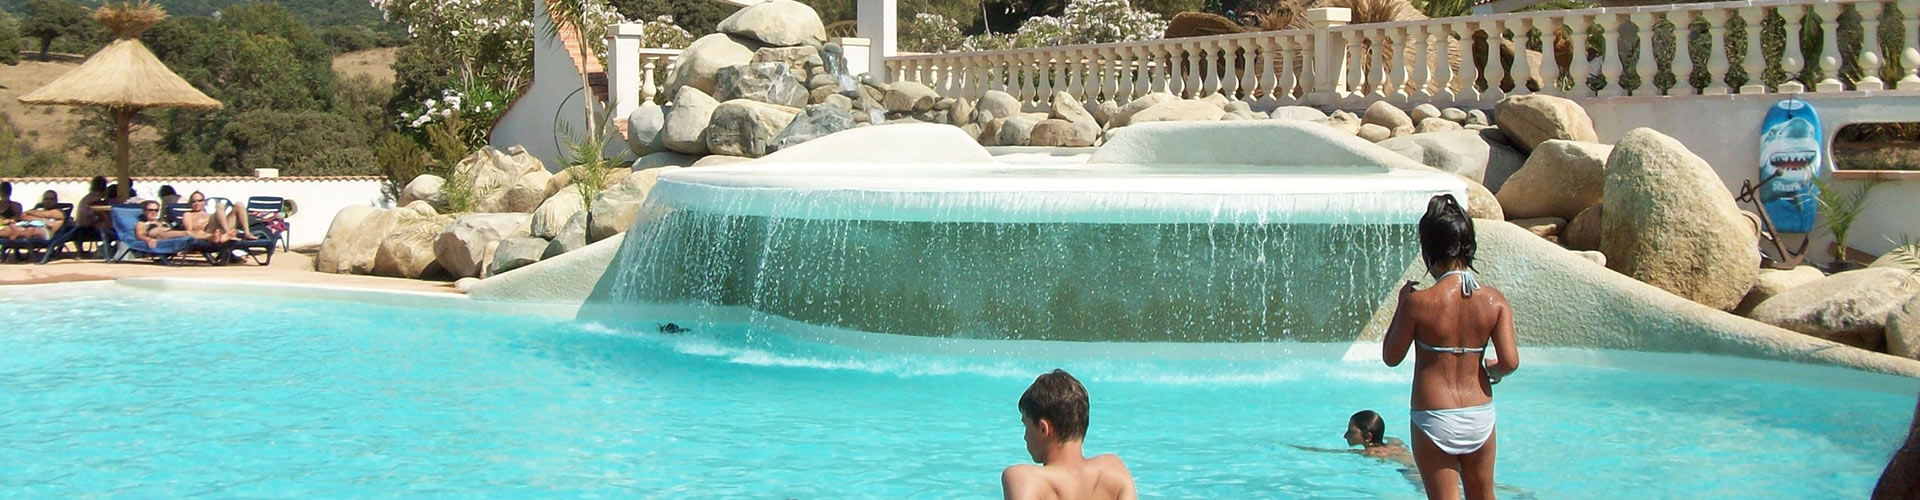 Camping water park corse